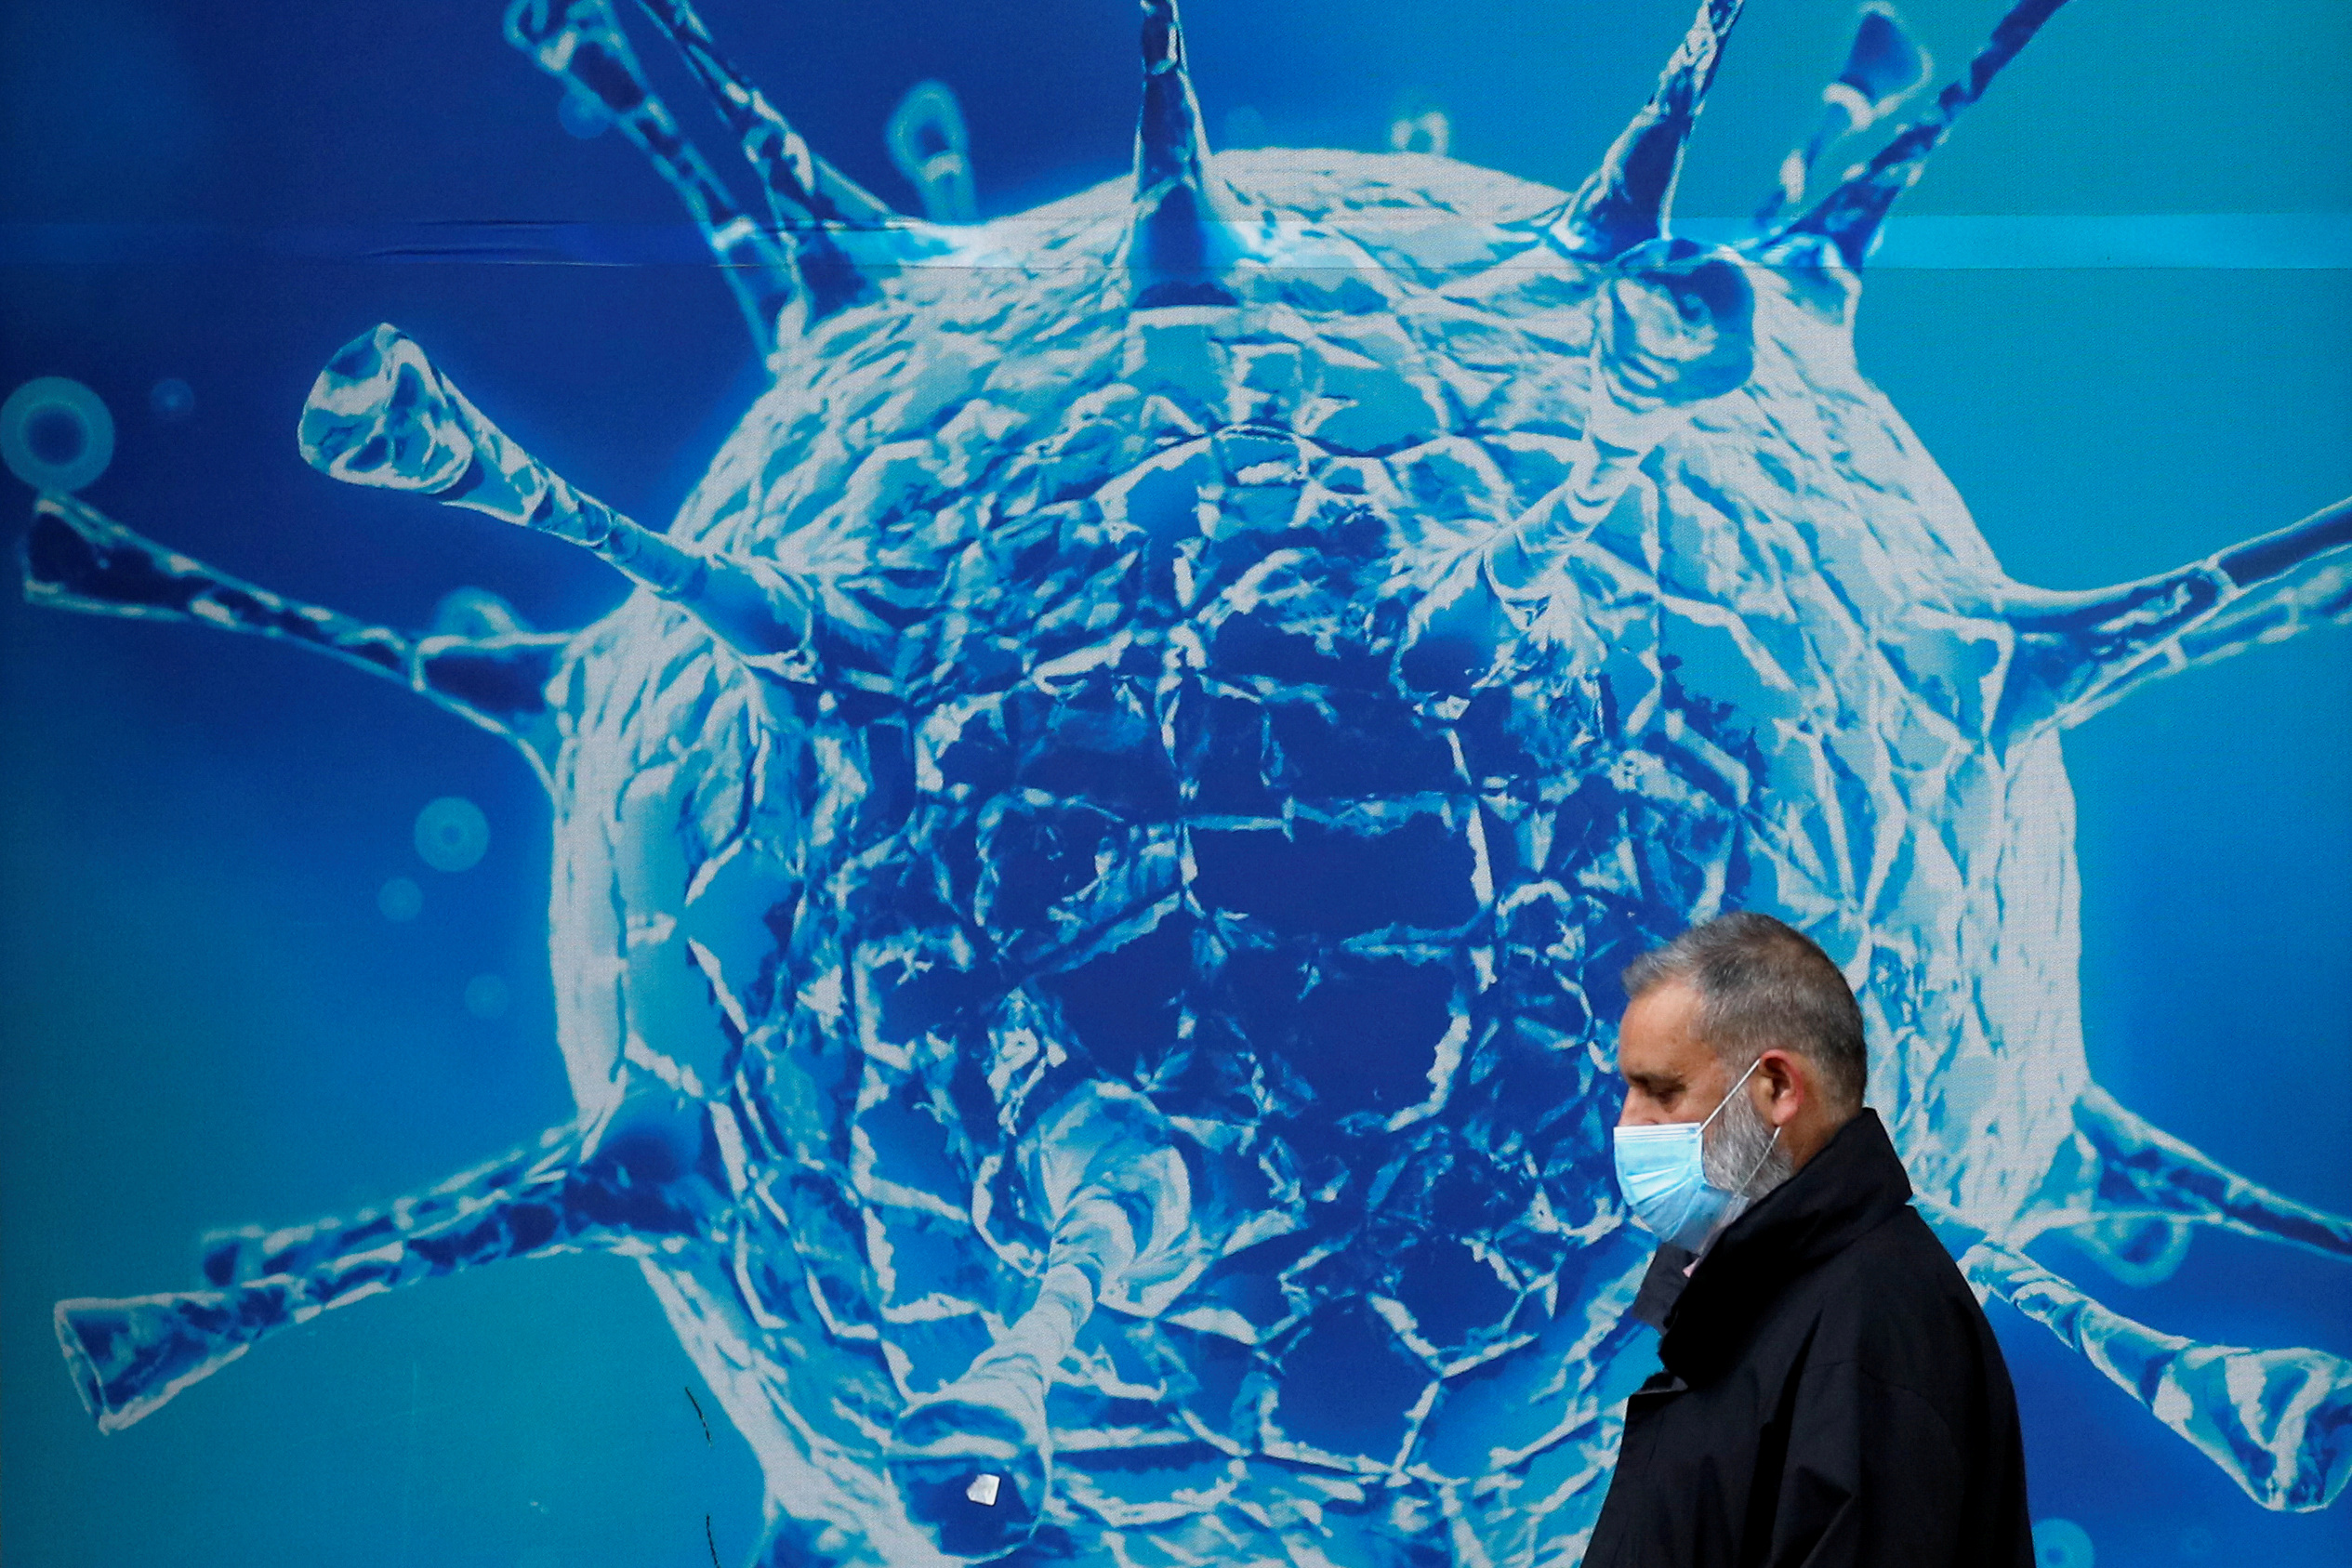 A man wearing a protective face mask walks past an illustration of a virus outside a regional science centre amid the coronavirus disease (COVID-19) outbreak, in Oldham, Britain August 3, 2020. REUTERS/Phil Noble